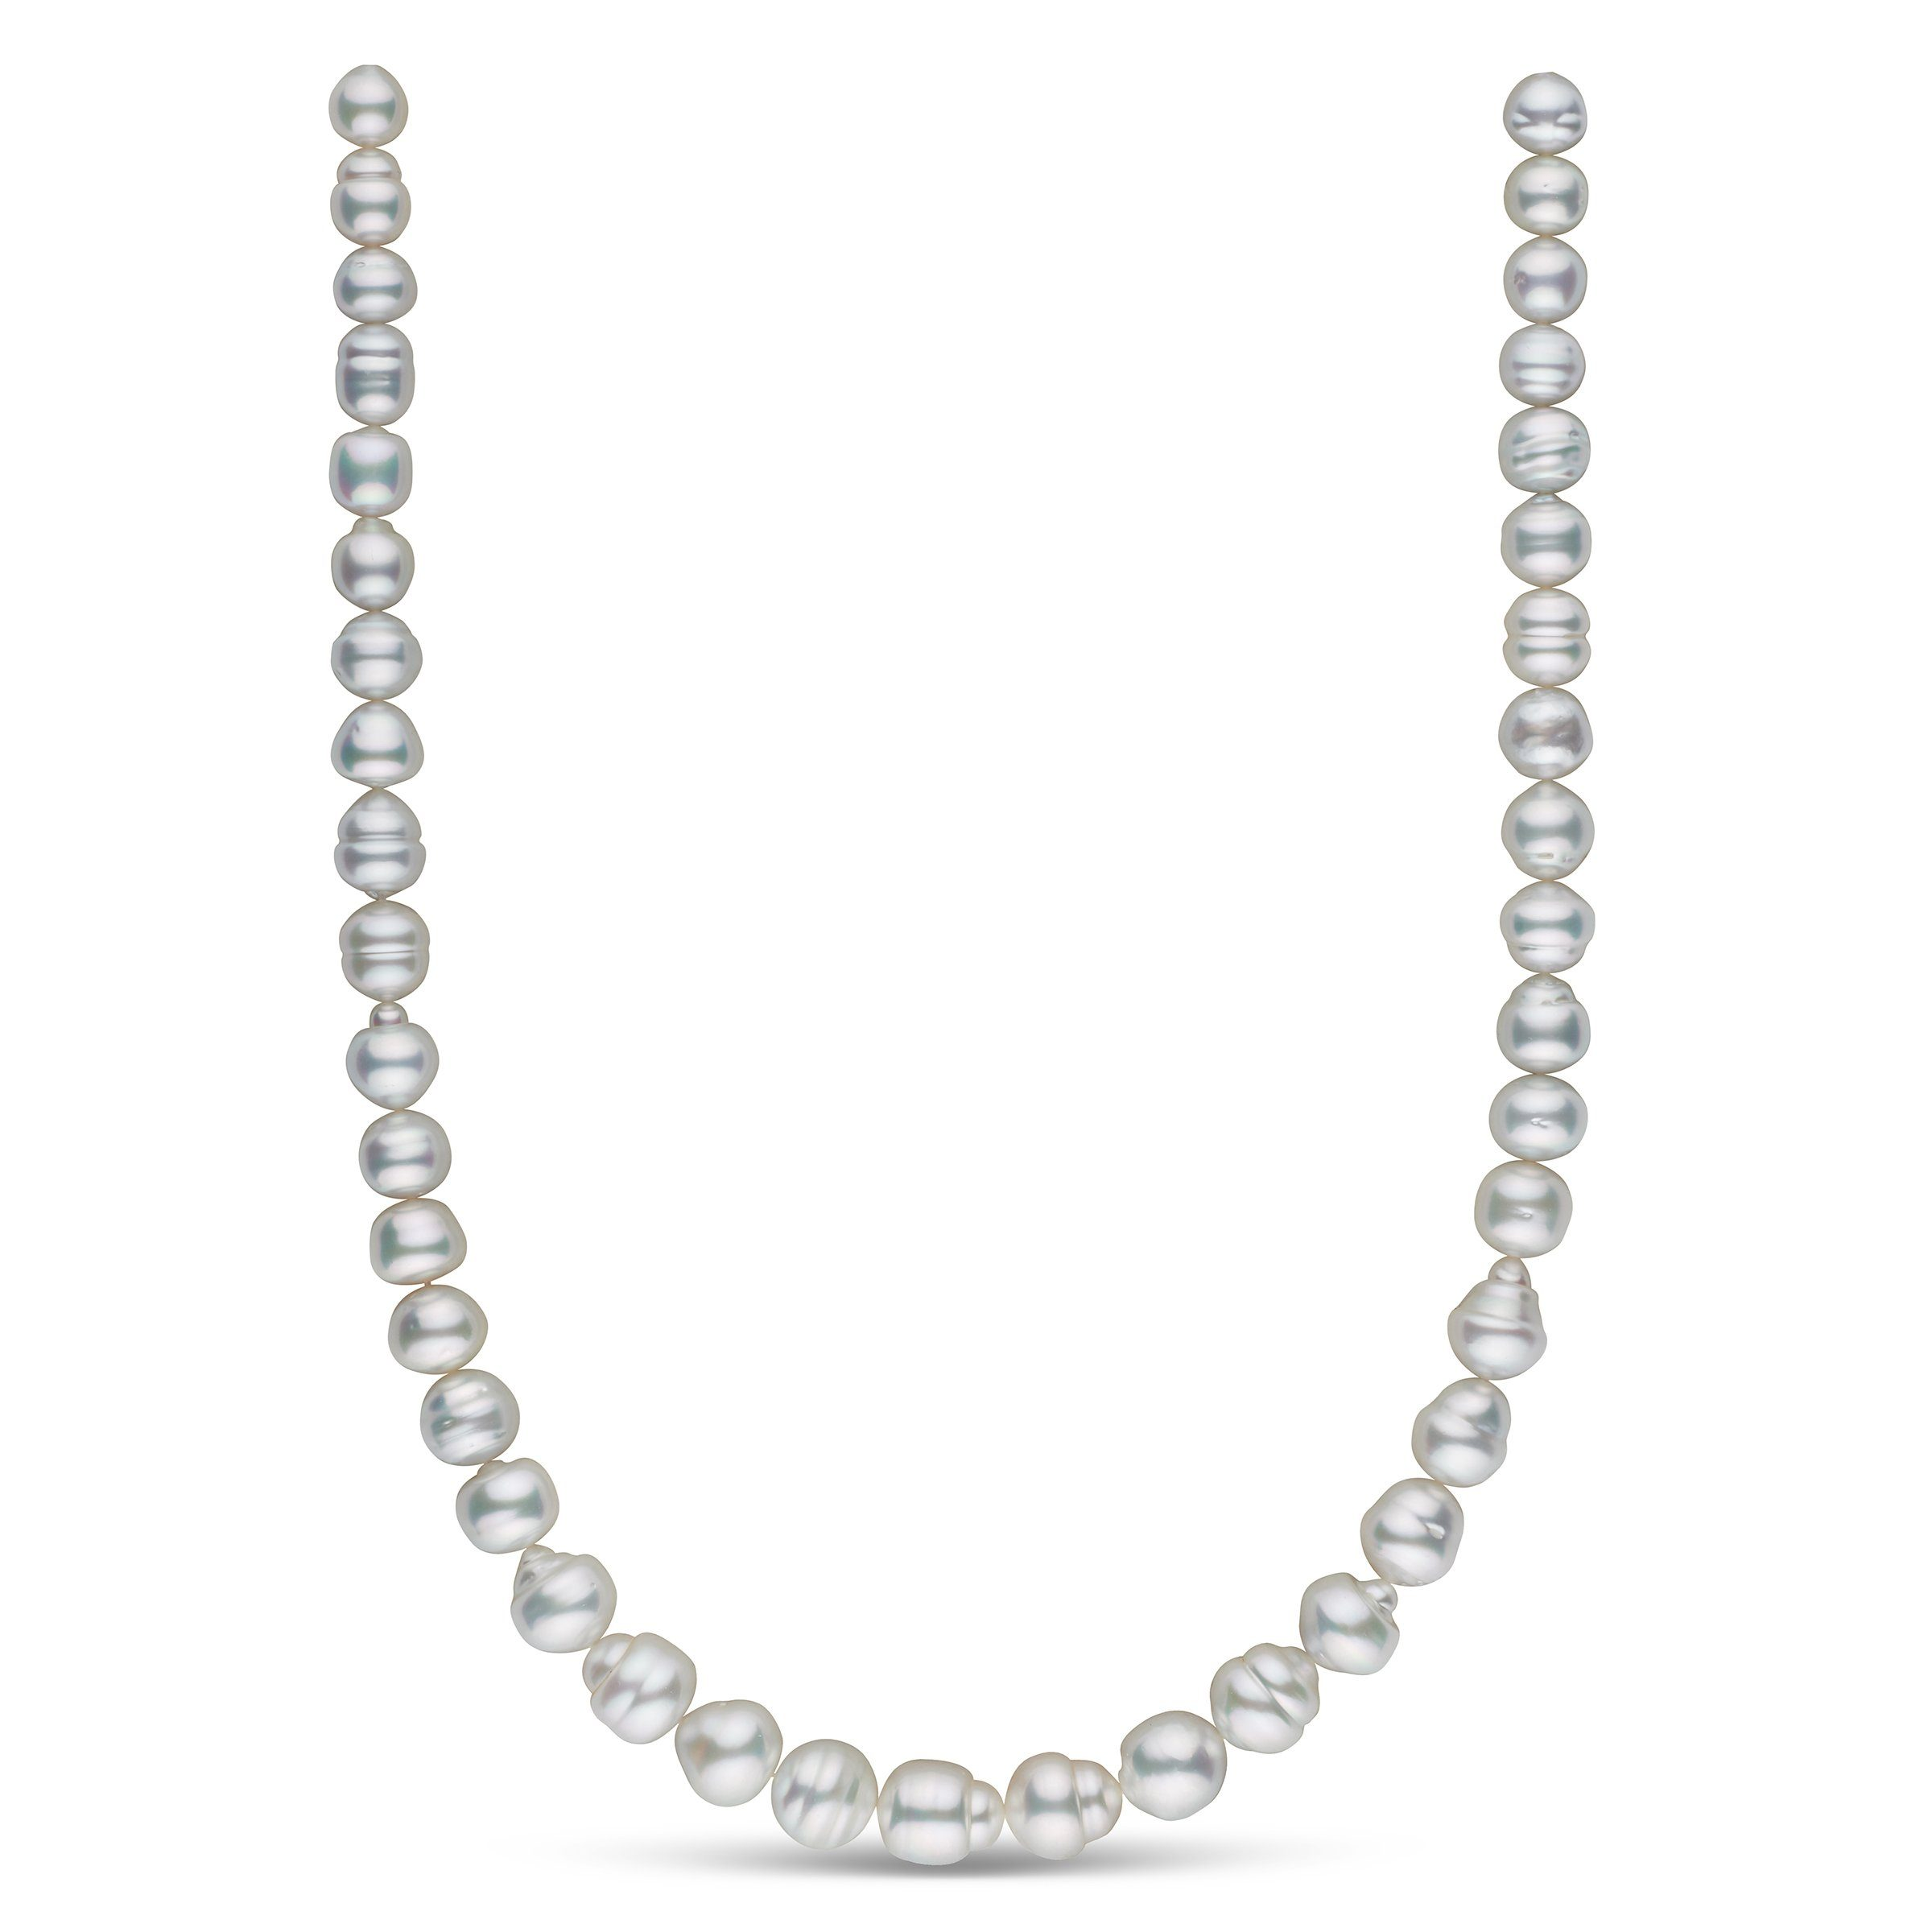 8.2-11.4 mm AA+/AAA White South Sea Baroque Necklace